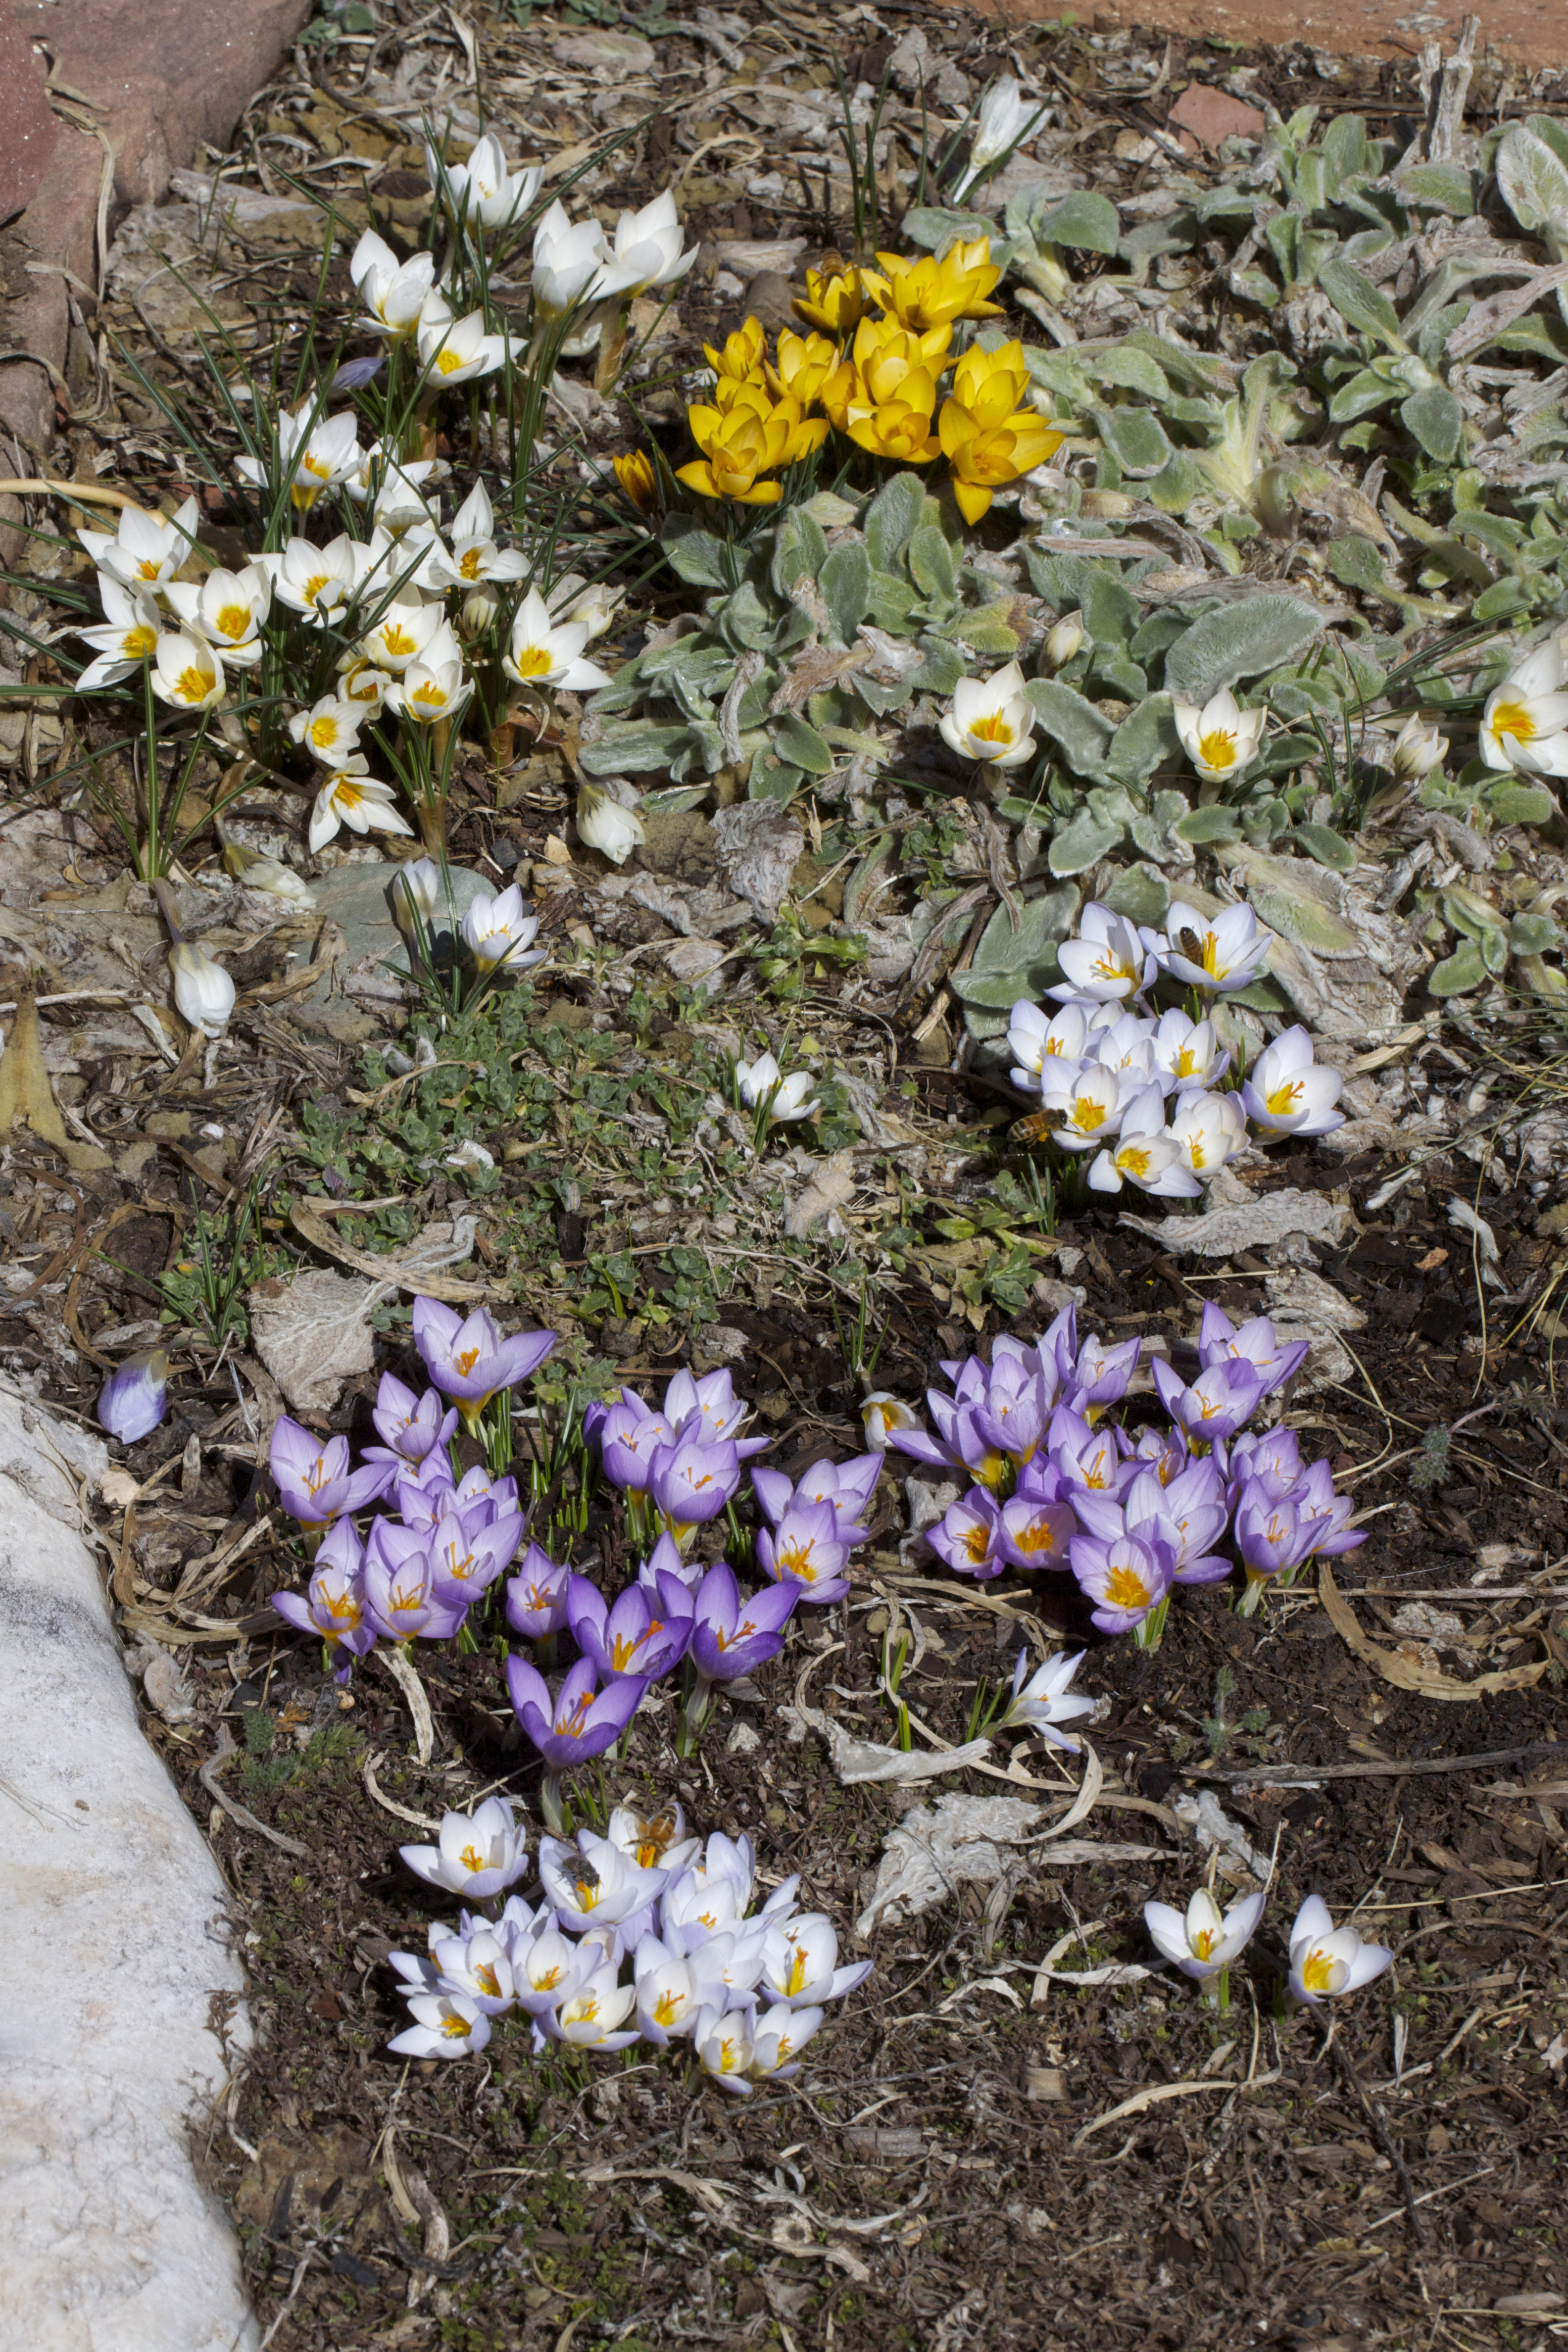 The first crocus patch to bloom, at its peak last week.